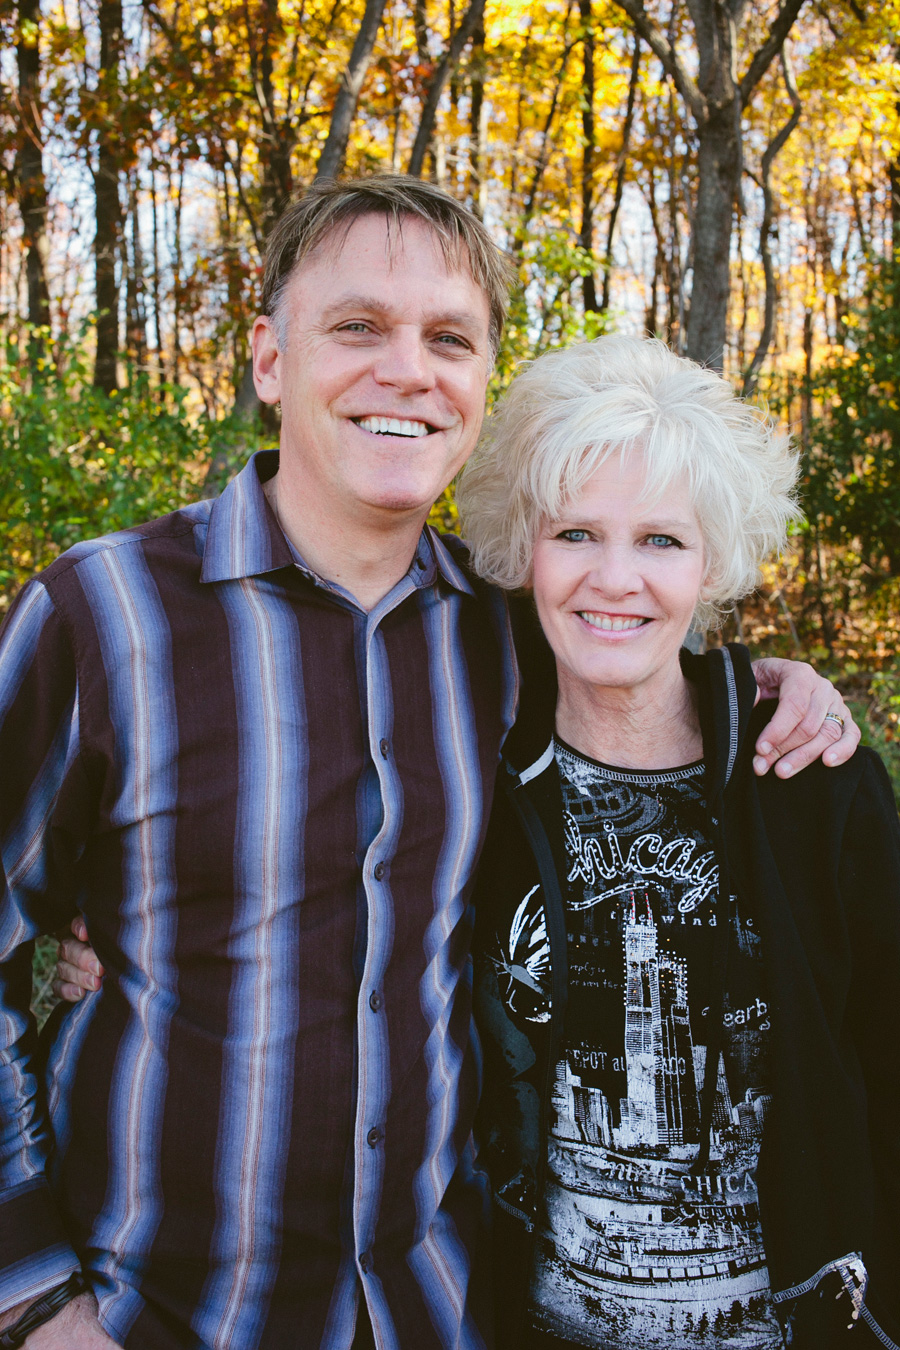 Mike & Ginny Majeski   Mike brings over 40 years of pastoral experience and church leadership into the Merge mix. His love of truth and heart for people shape his role as a teaching pastor. Mike and his wife of over 35 years, Ginny, reside in Canton and have two married children: Mallory and Michael Tyler. Mike is a lover of music, is into playing guitar, motorcycle riding with his wife, golf and hunting. Ginny loves kids and teaching the piano.